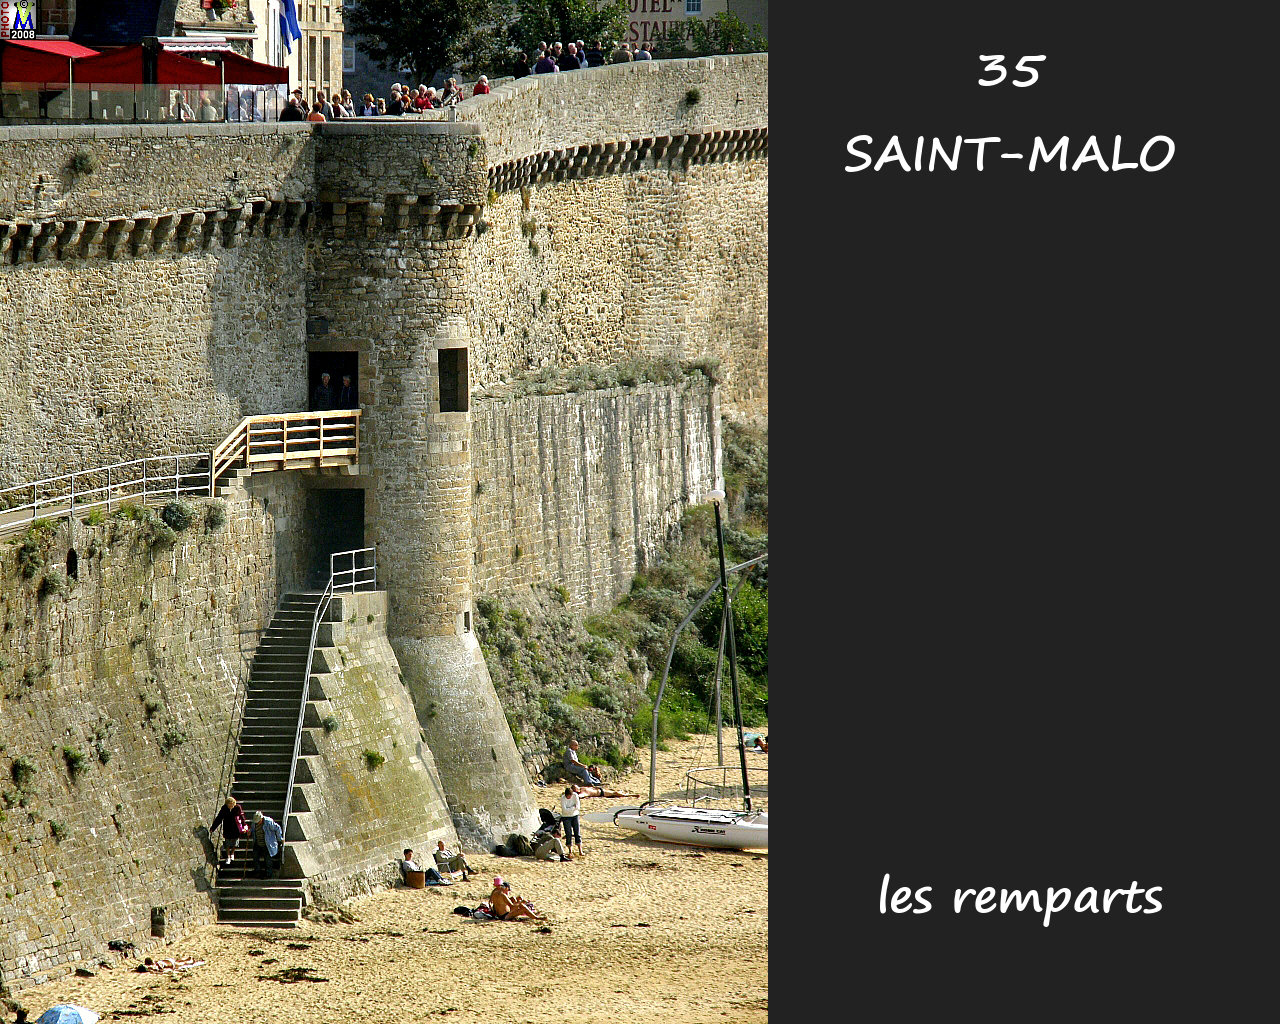 35StMALO_remparts_120.jpg